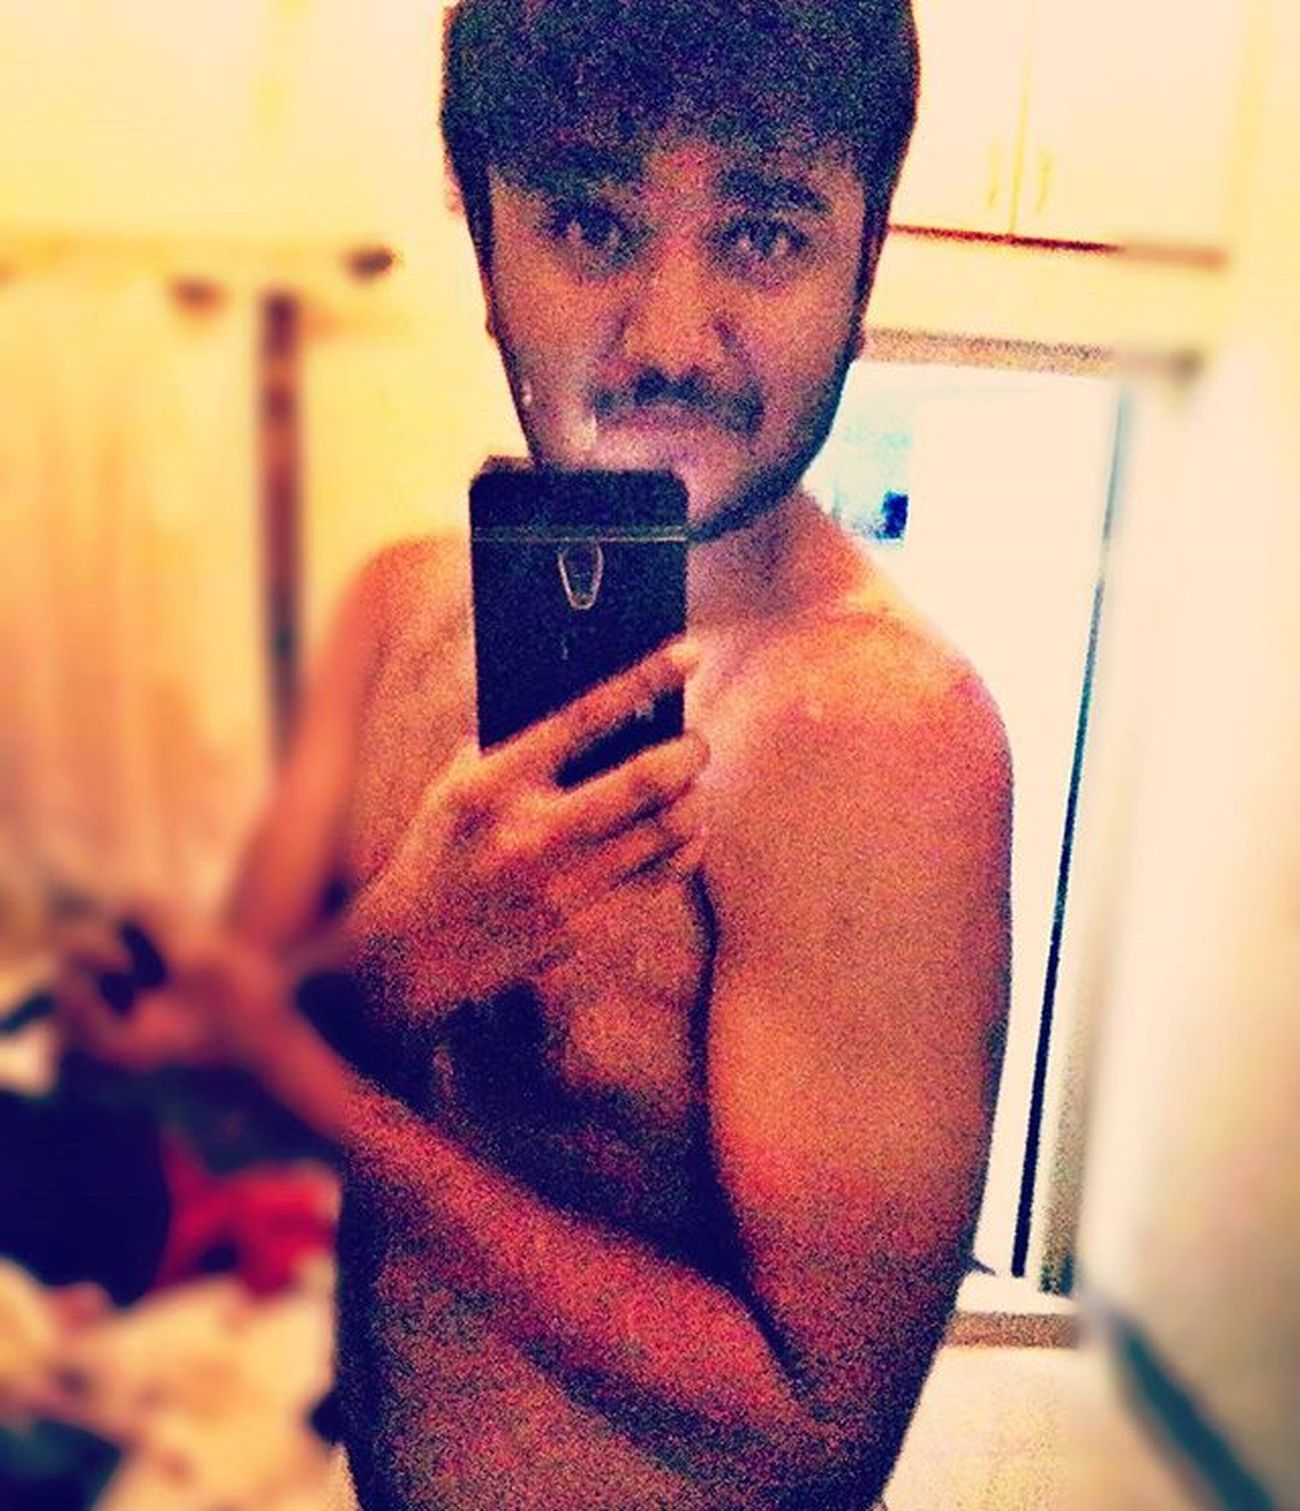 Morningselfie Gym Recovery Seen Effects After 2Months Hardwork Butdidnt Acheived TheGoal